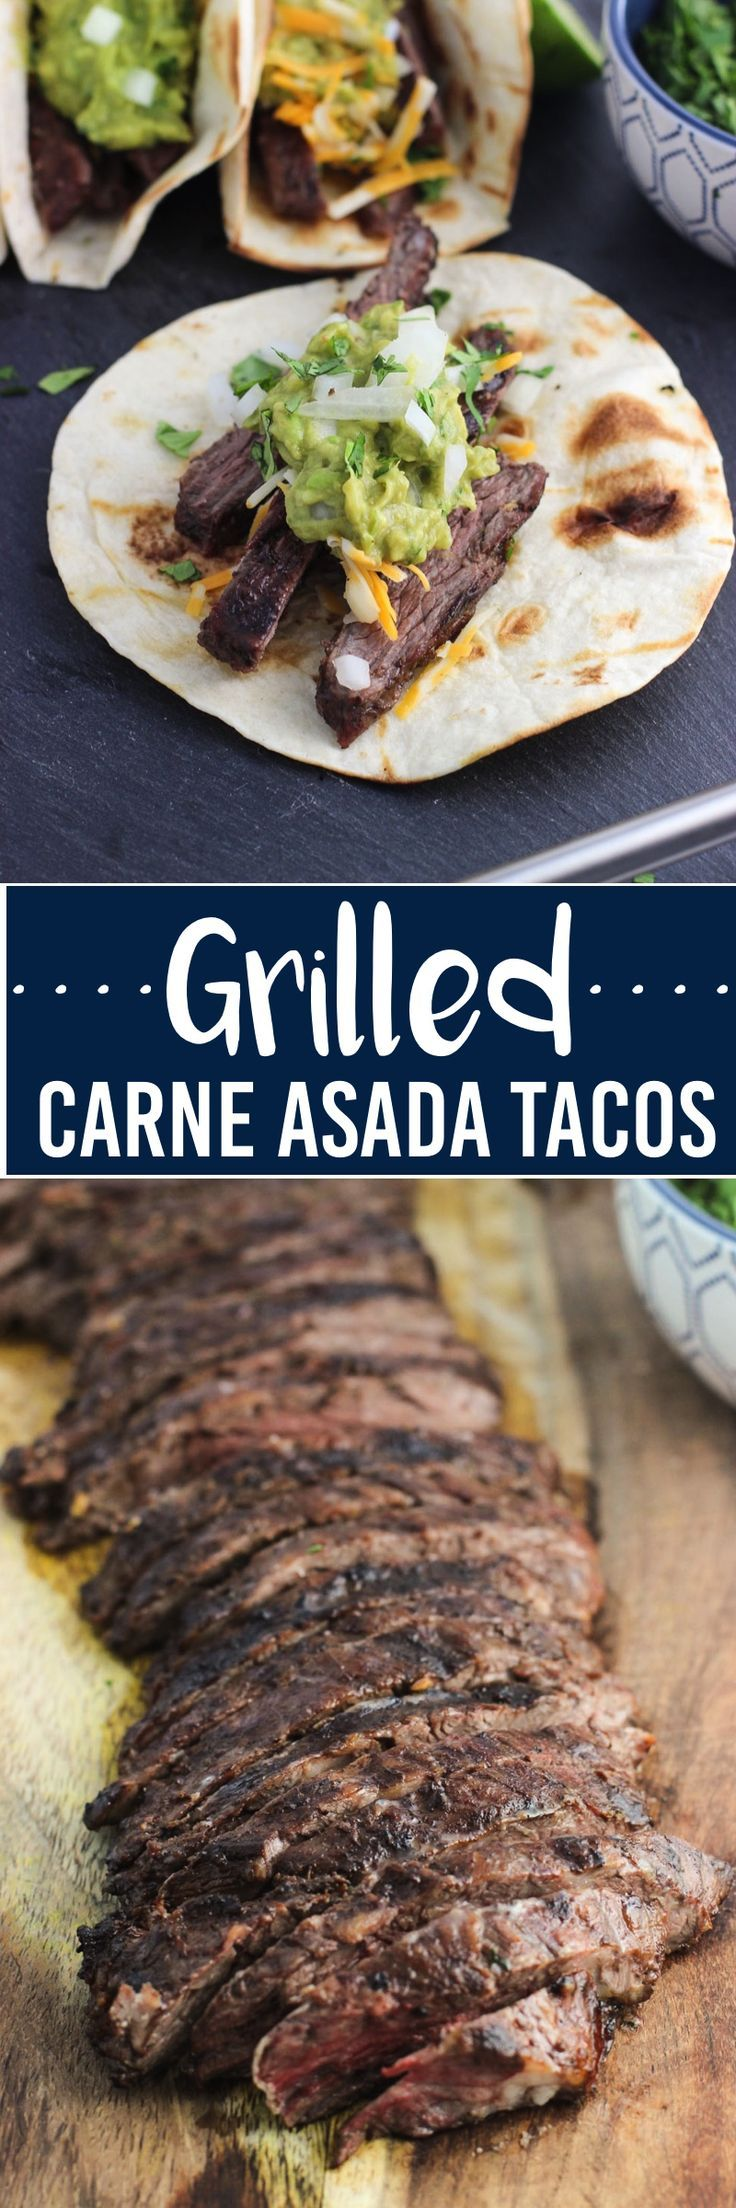 These grilled carne asada tacos feature tender, marinated skirt steak, grilled tacos, and all of your favorite toppings.